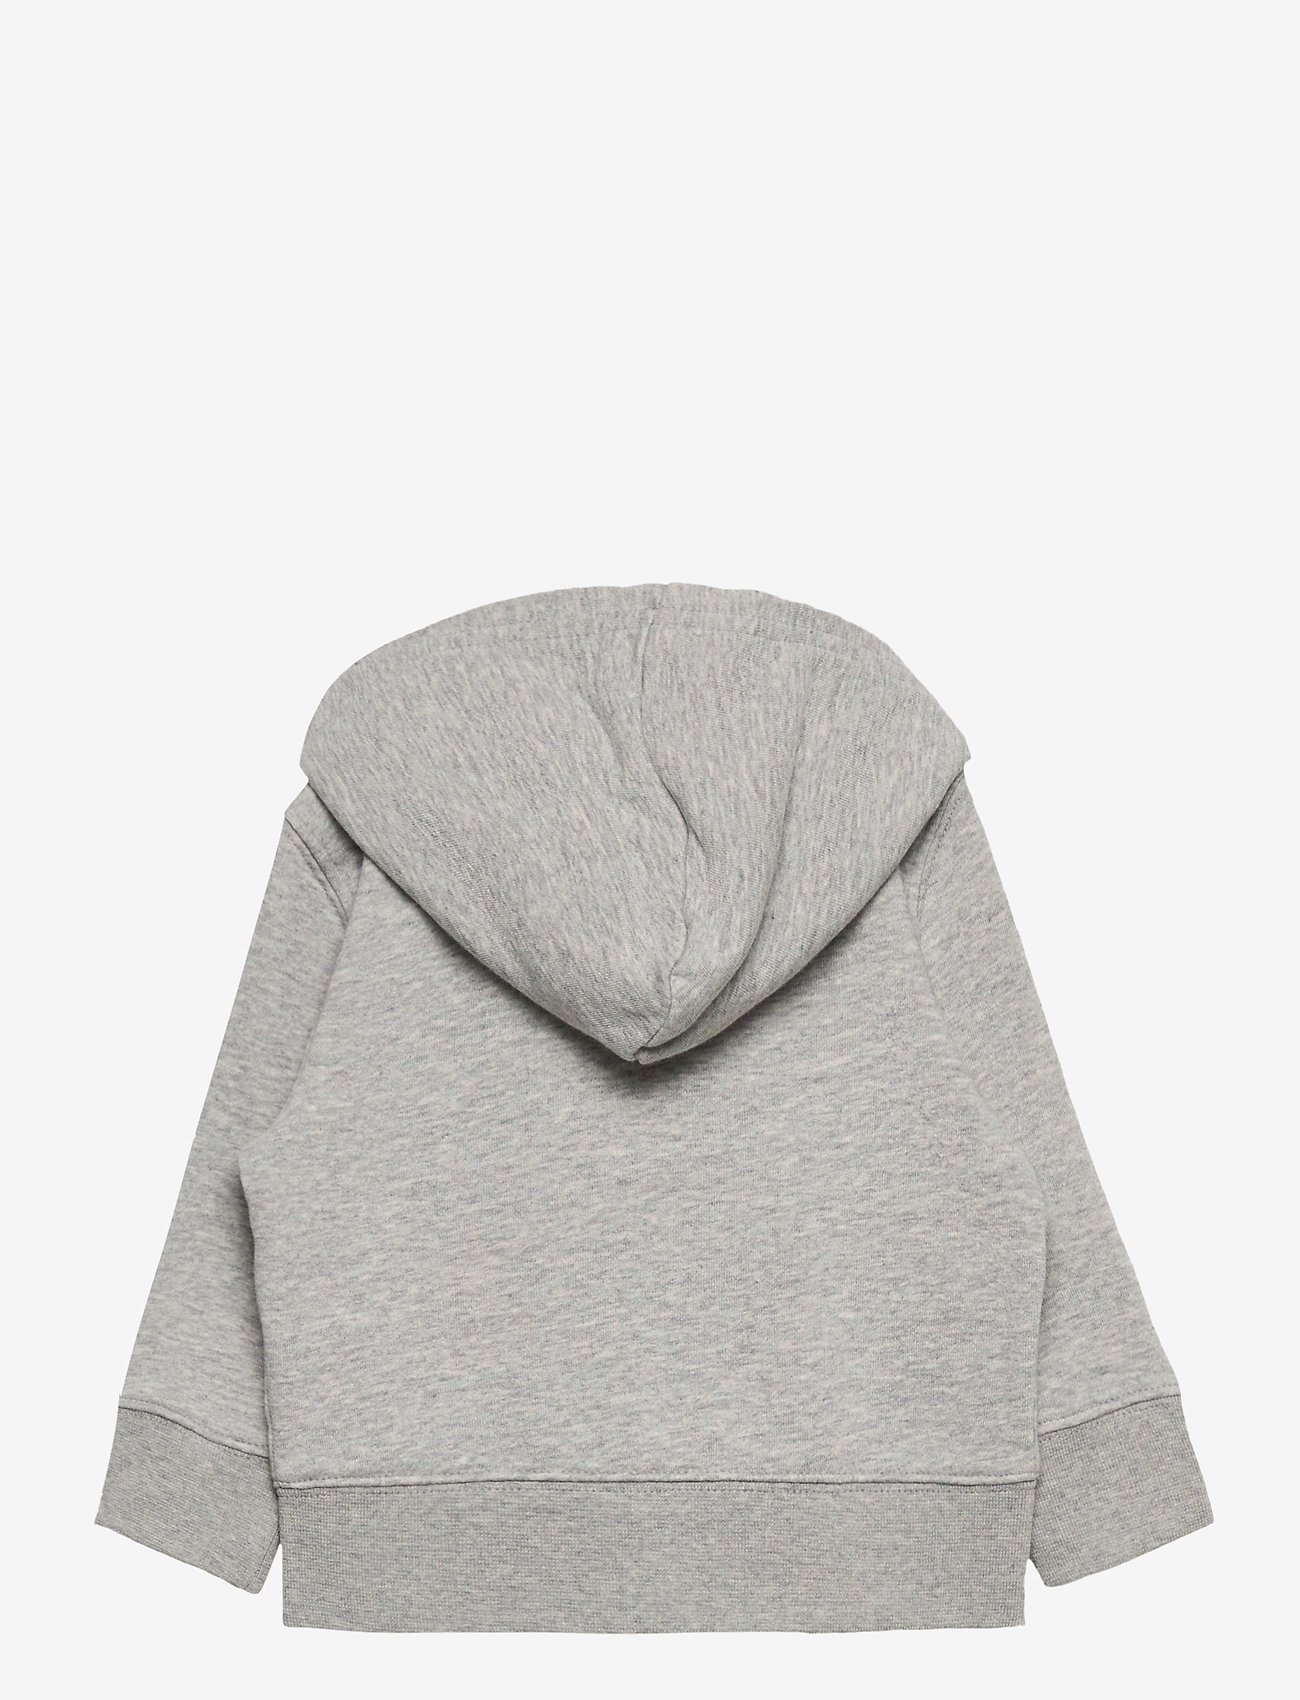 GAP - FZ FT LOGO REFRESH - kapuzenpullover - light heather grey b08 - 1